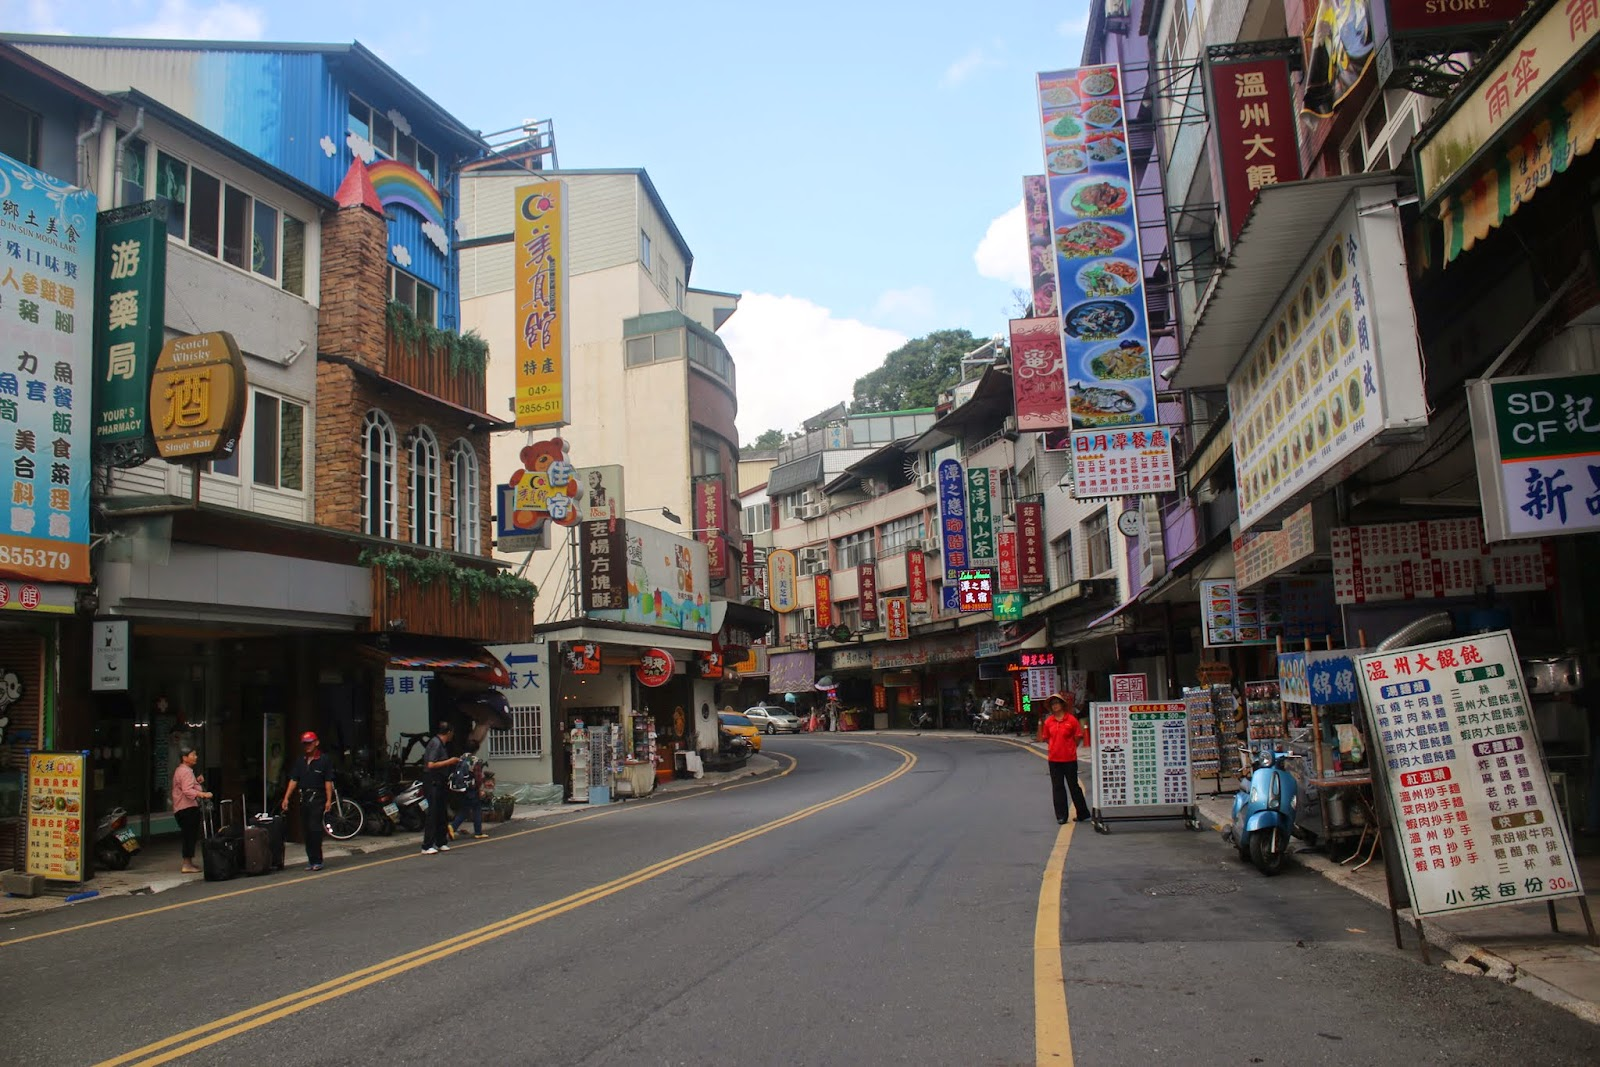 You can find eateries and hotels nearby Shueishe Pier at the popular national scenic of Sun Moon Lake in Taiwan